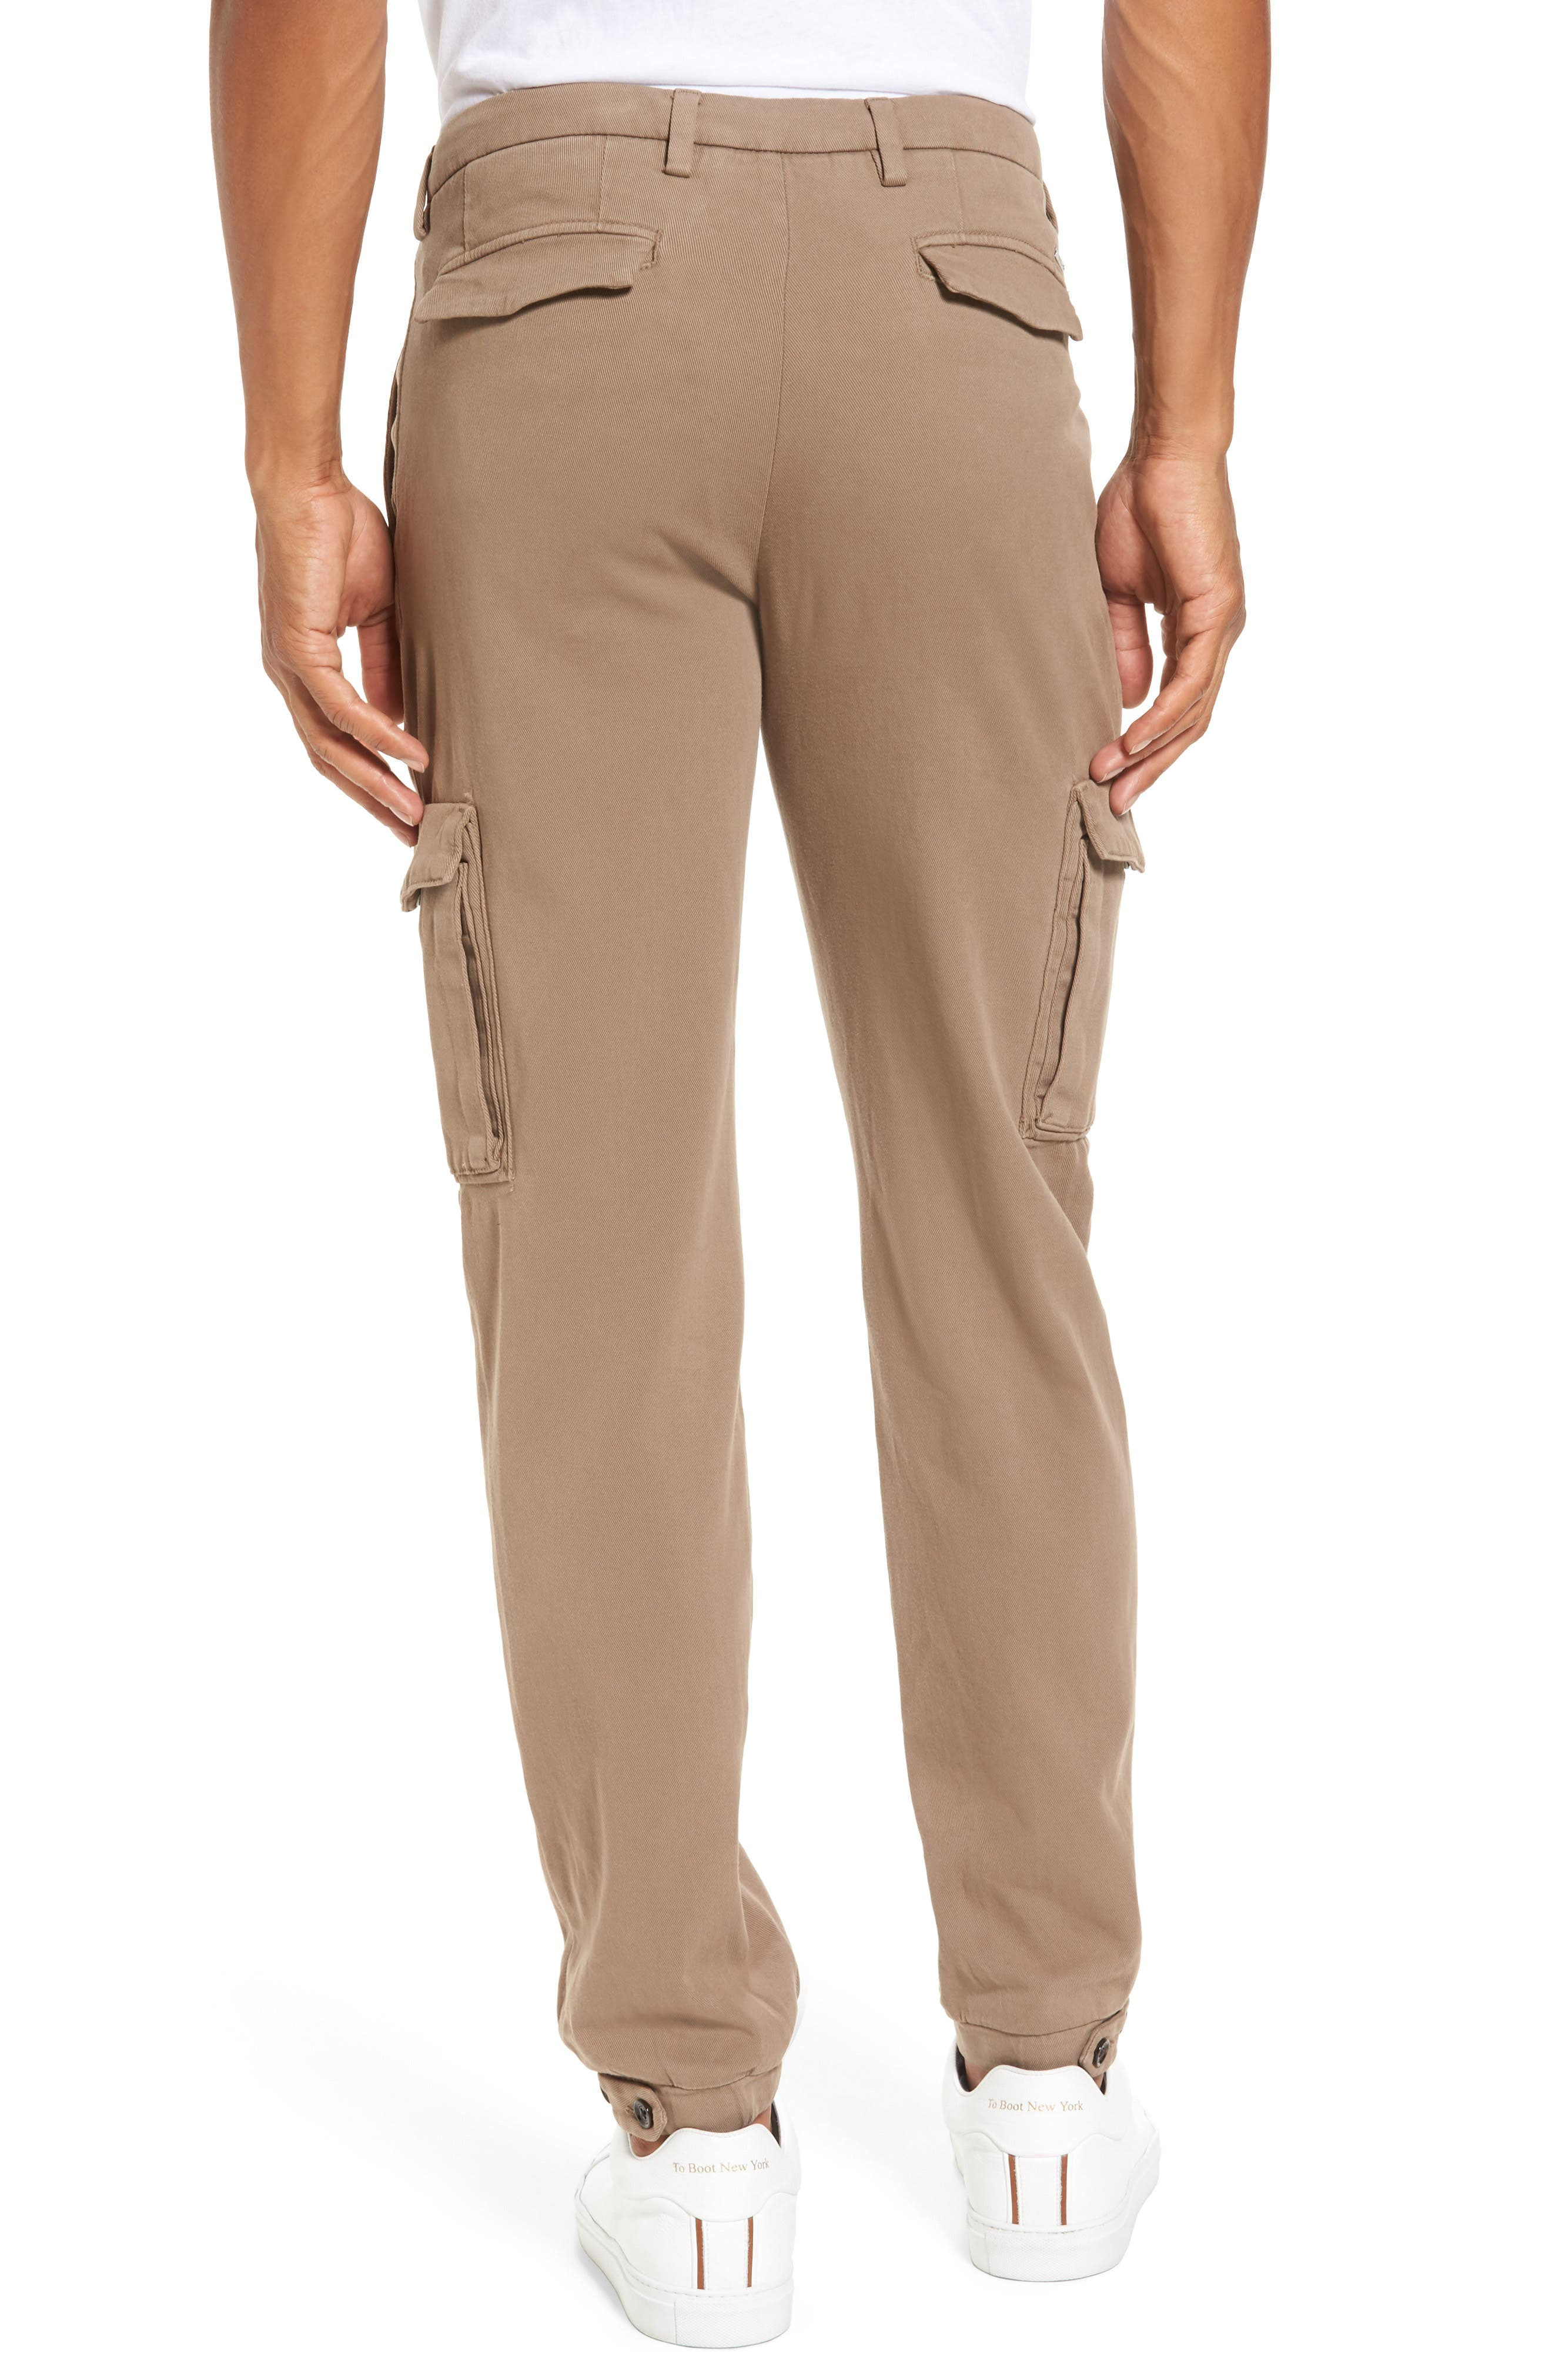 Kaigo Slim Jogger Pants,                             Alternate thumbnail 2, color,                             Khaki